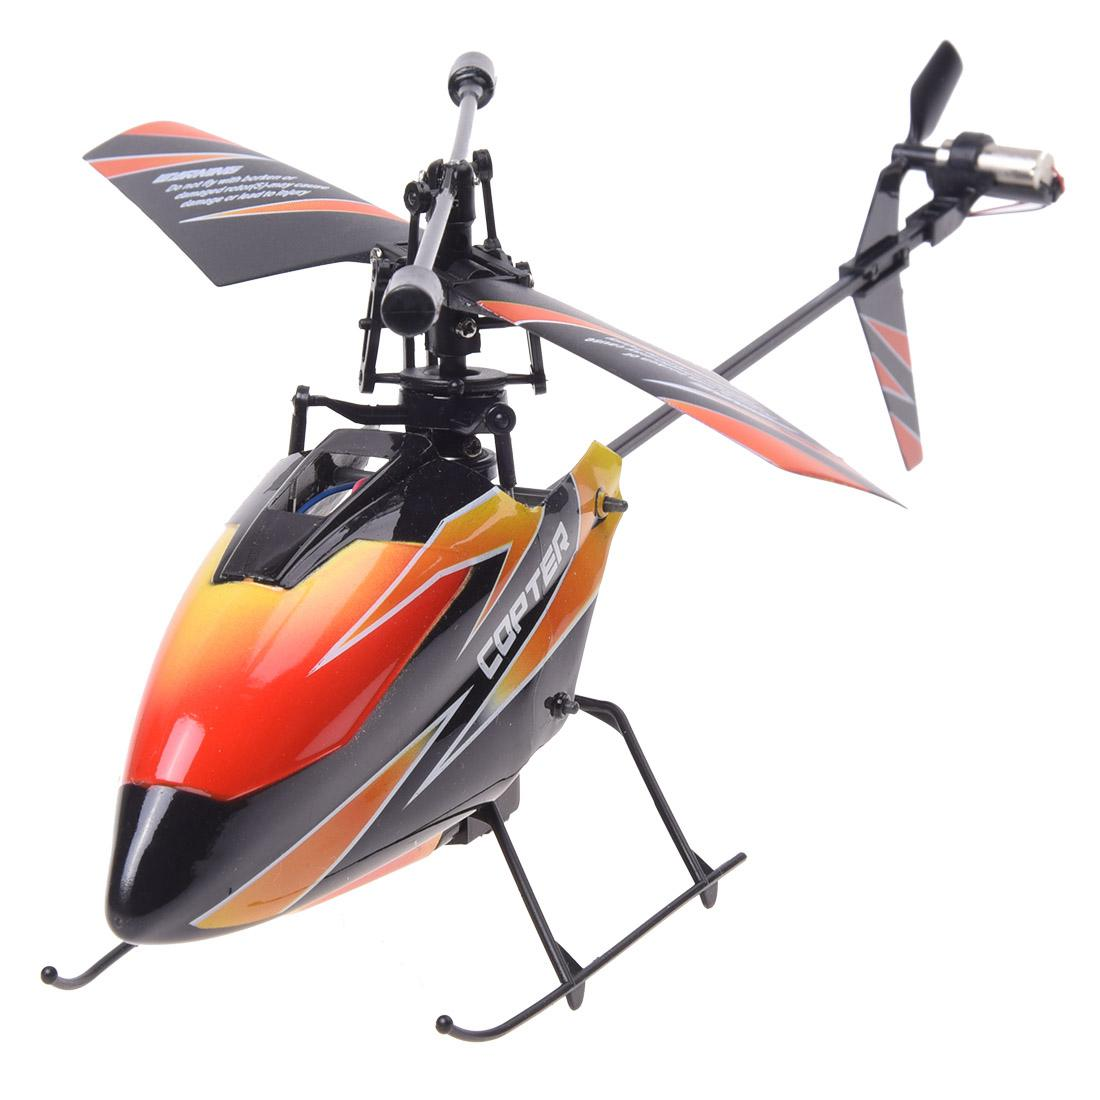 WL Replacement V911 2.4GHz 4CH RC Helicopter BNF New Plug Version(Without Transmitter) v911 2 nose shell vertical tail for wl v911 r c aircraft black red